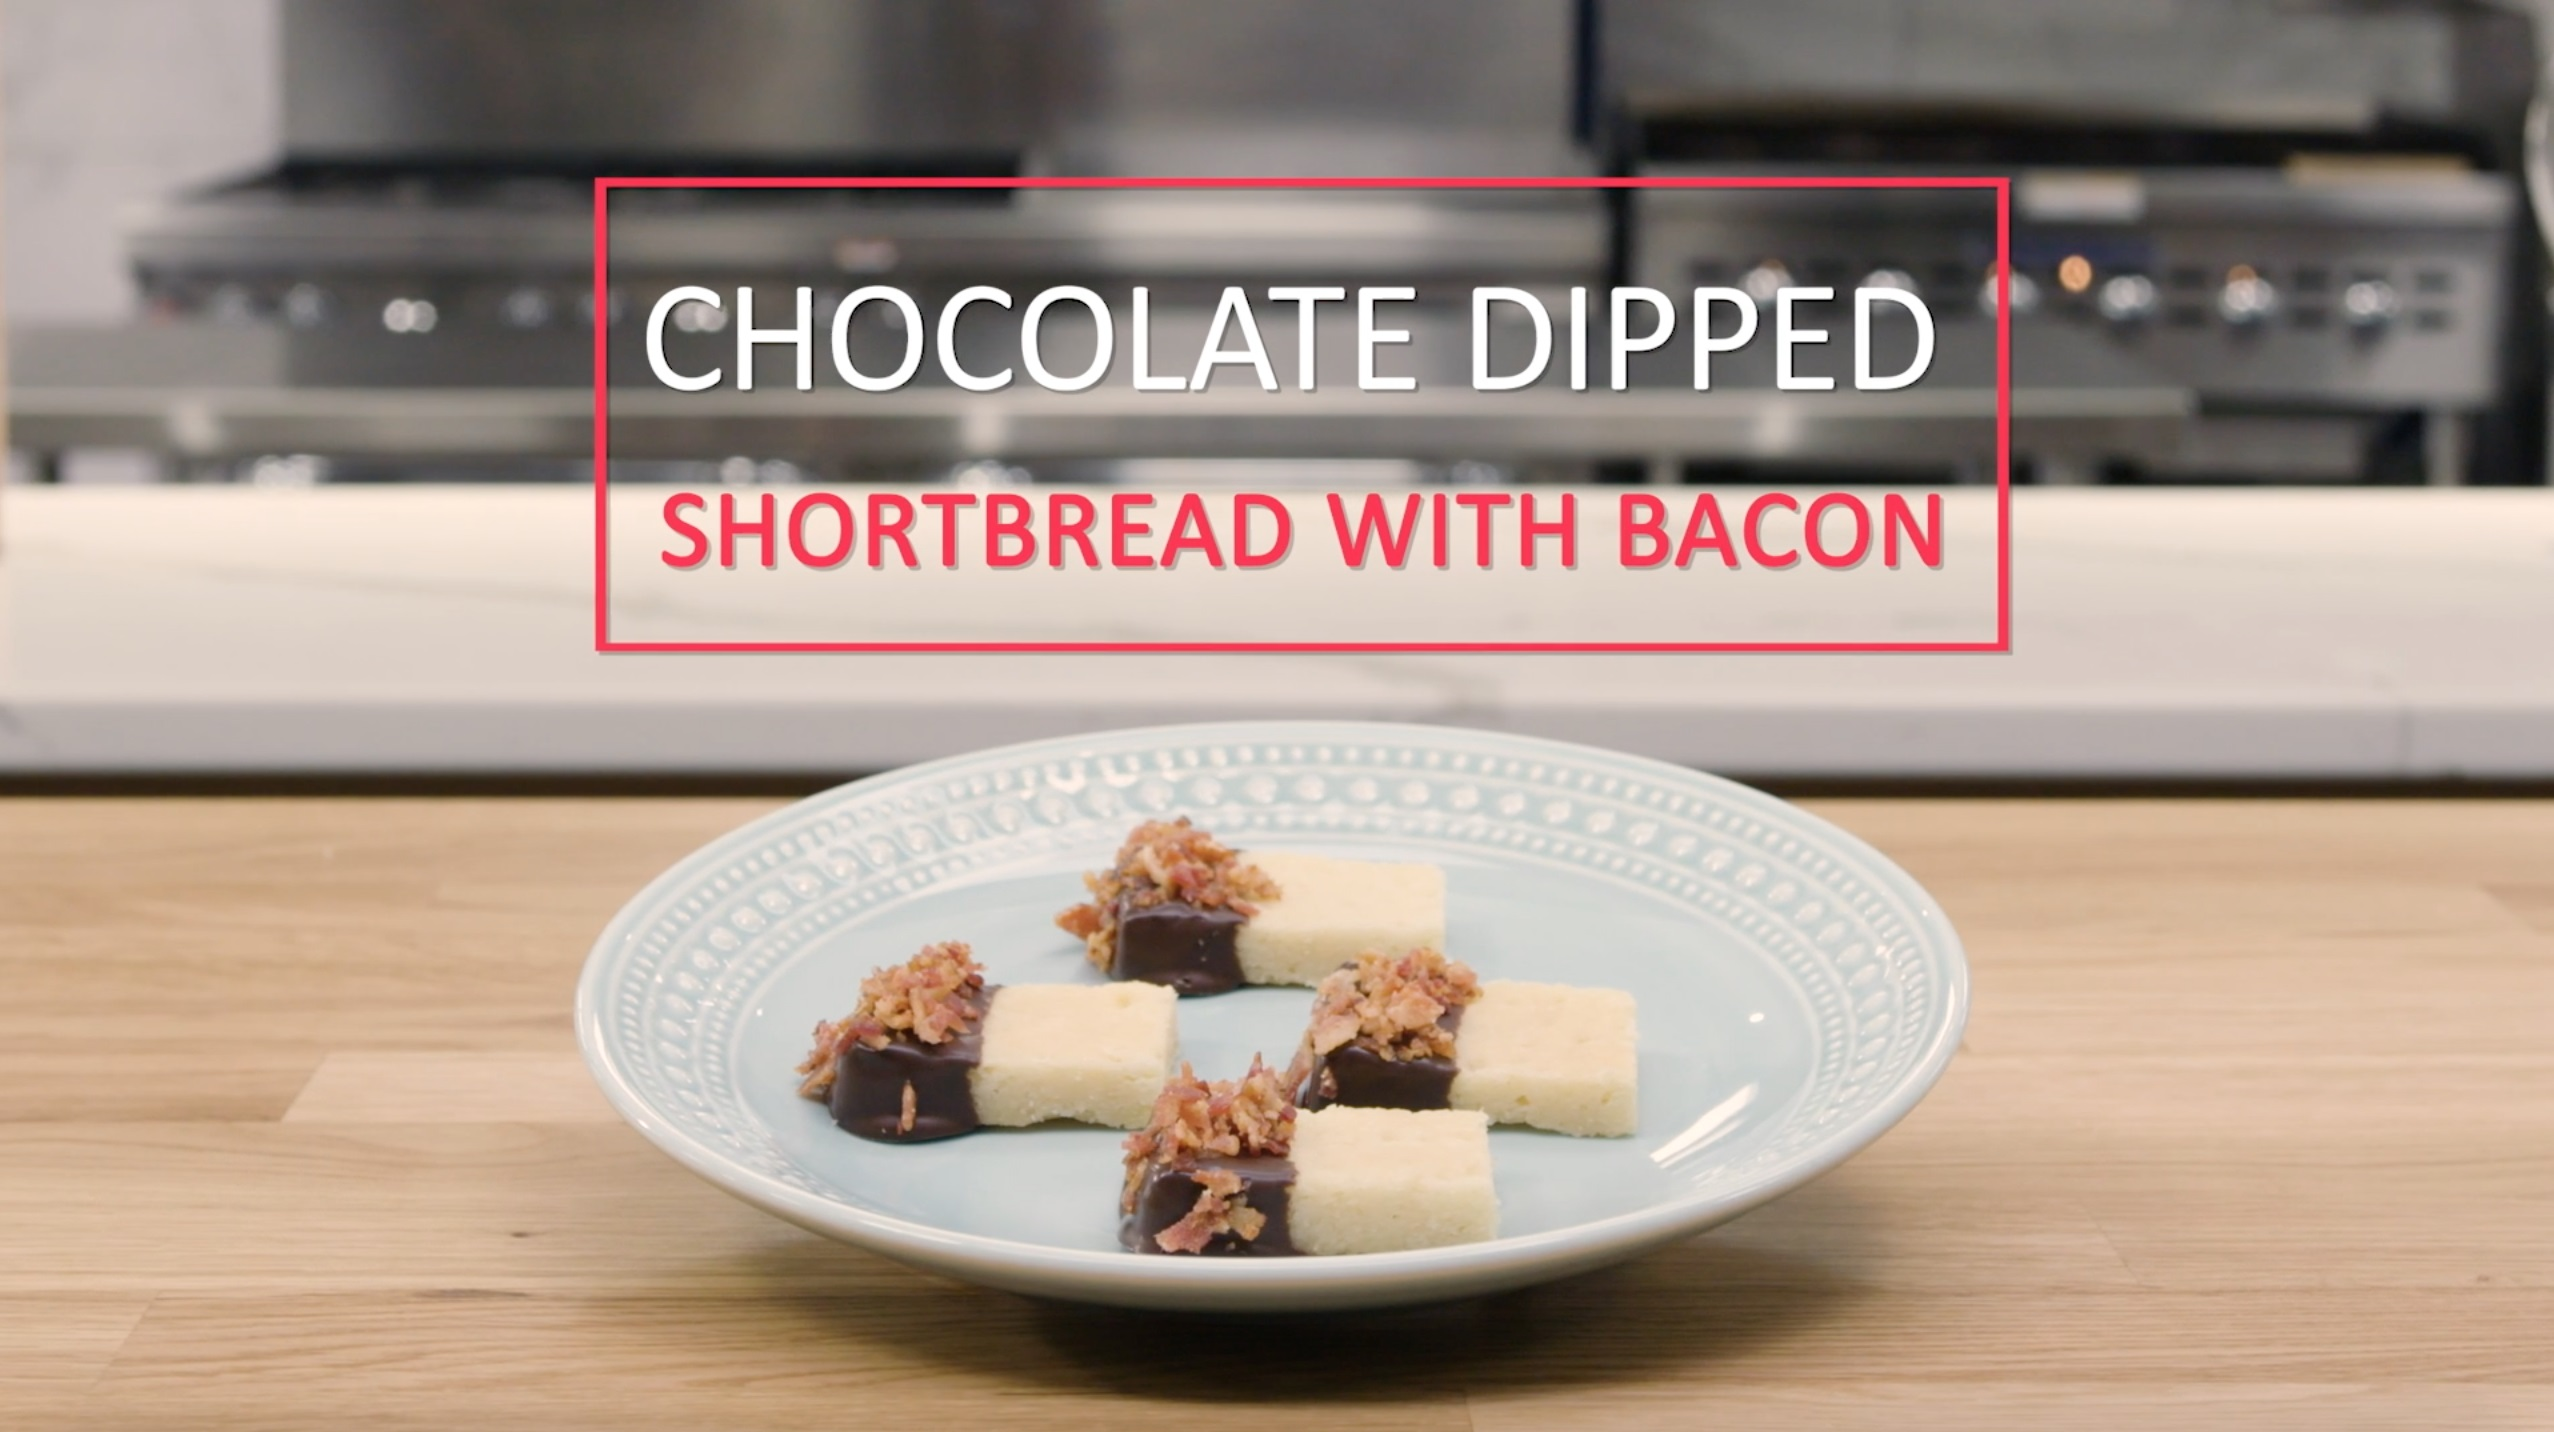 Chocolate Dipped Shortbread with Bacon